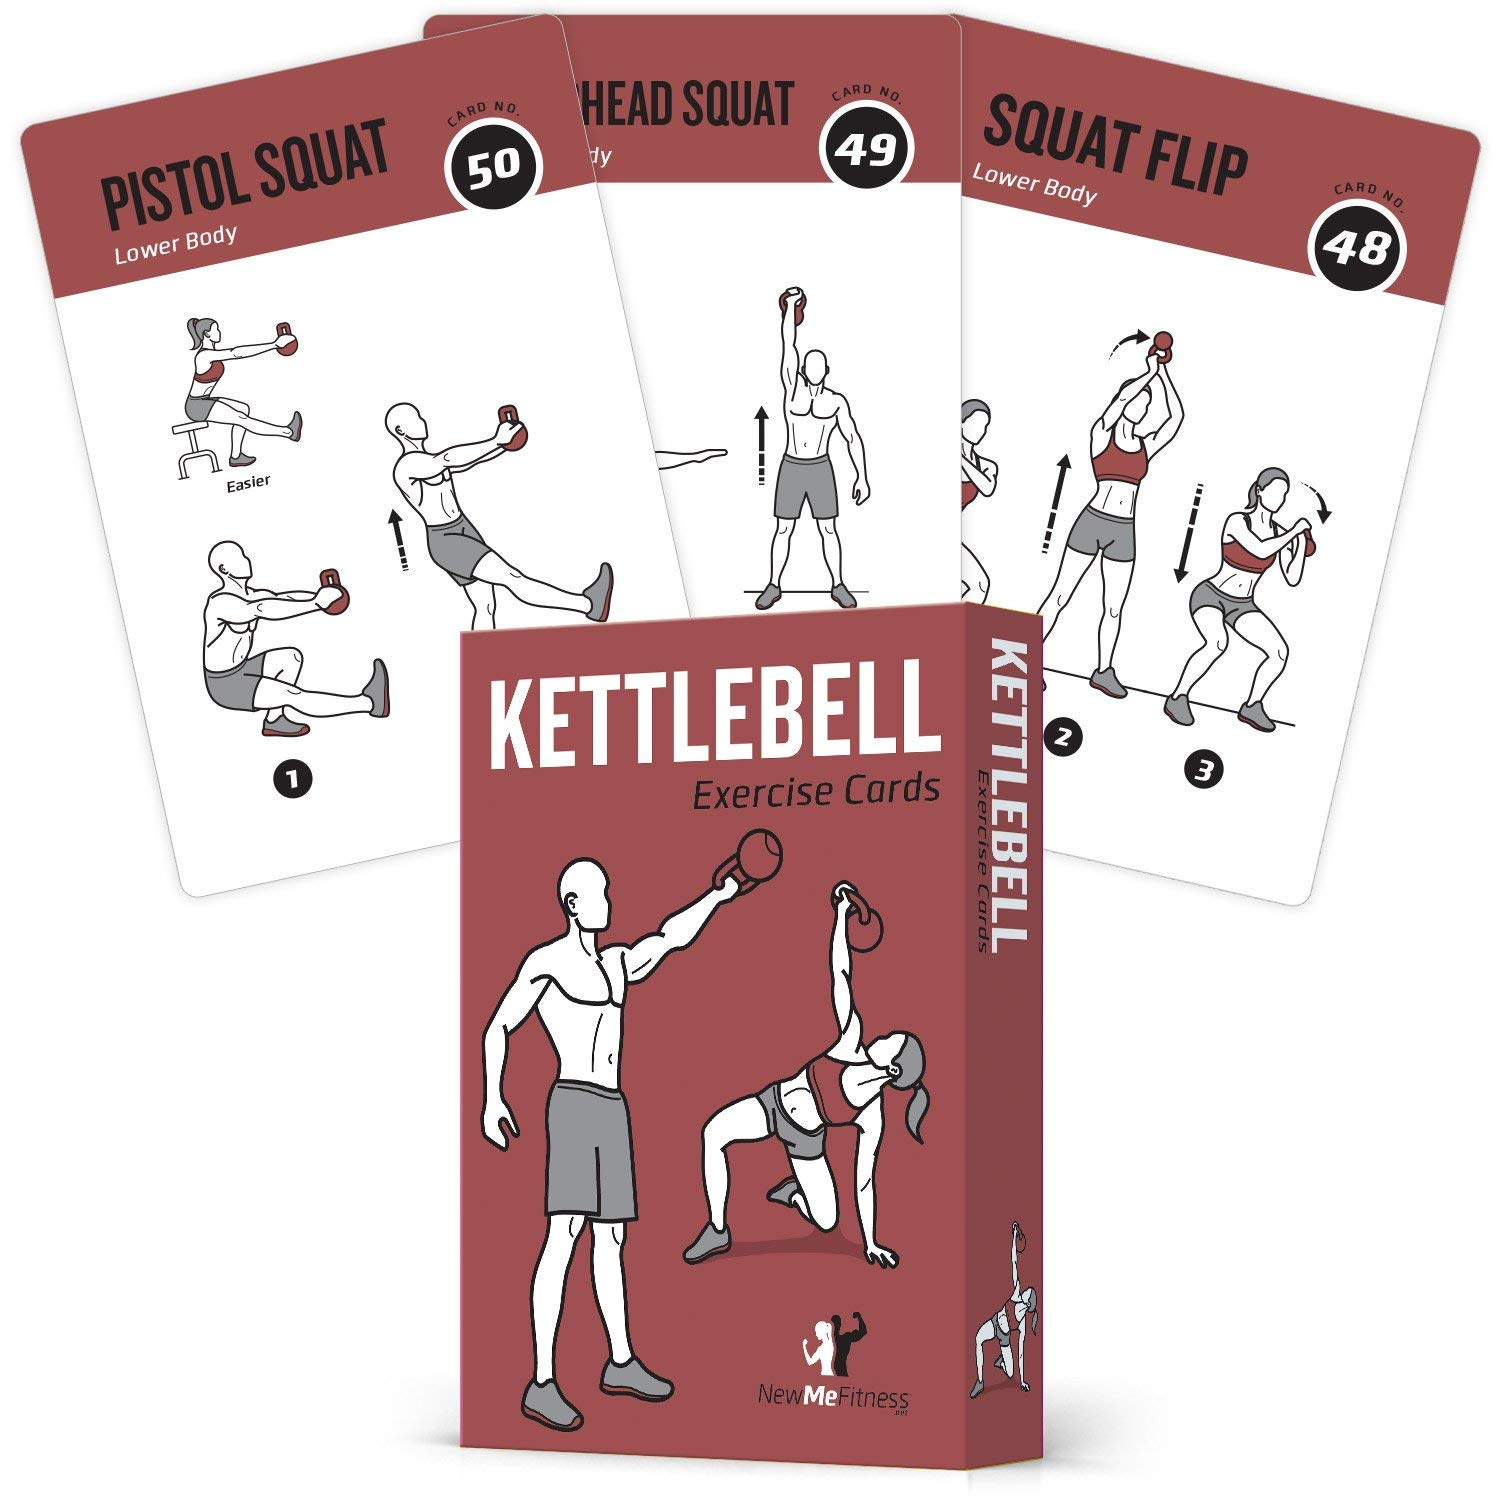 "Exercise Cards Kettlebell – Home Gym Workouts HIIT Strength Training Build Muscle Total Body Fitness Guide Training Routines Bodybuilding Personal Learn KB Moves 3.5""x5"" Cards Burn Fat"